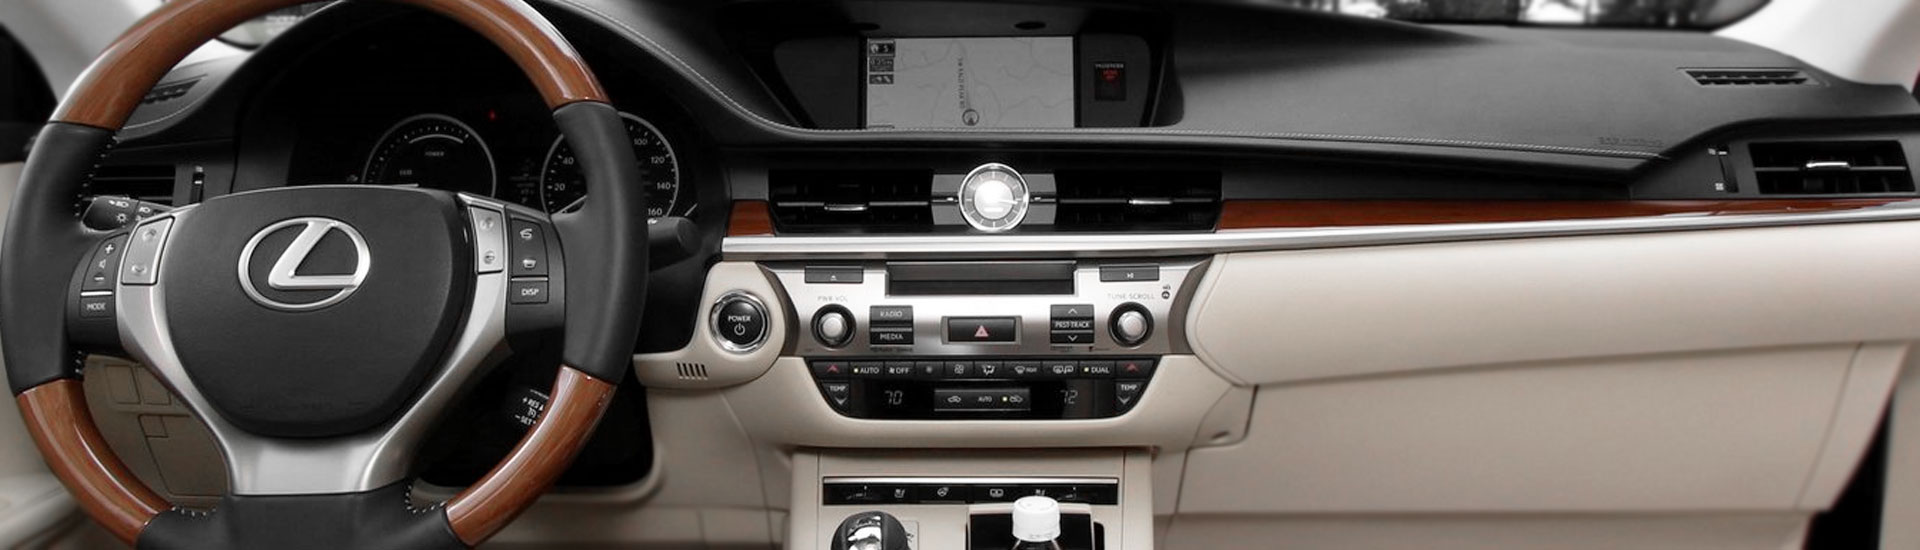 2011 Lexus CT Custom Dash Kits